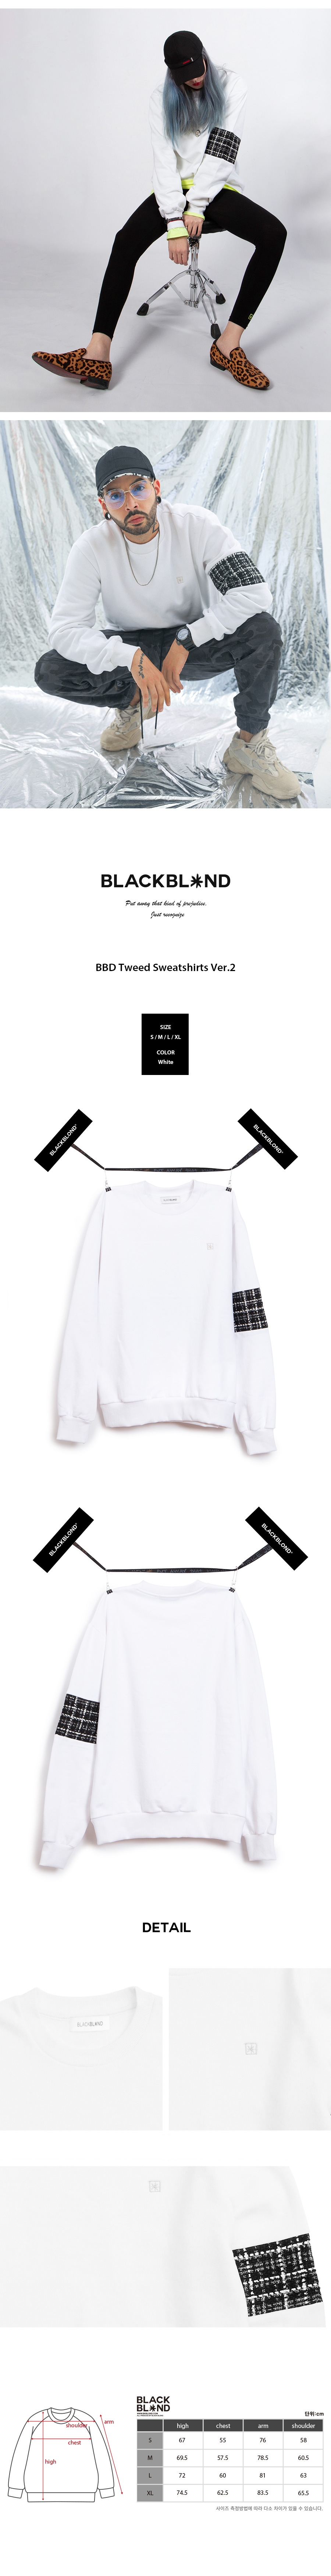 BBD-Tweed-Sweatshirts-Ver_2-%28White%29.jpg